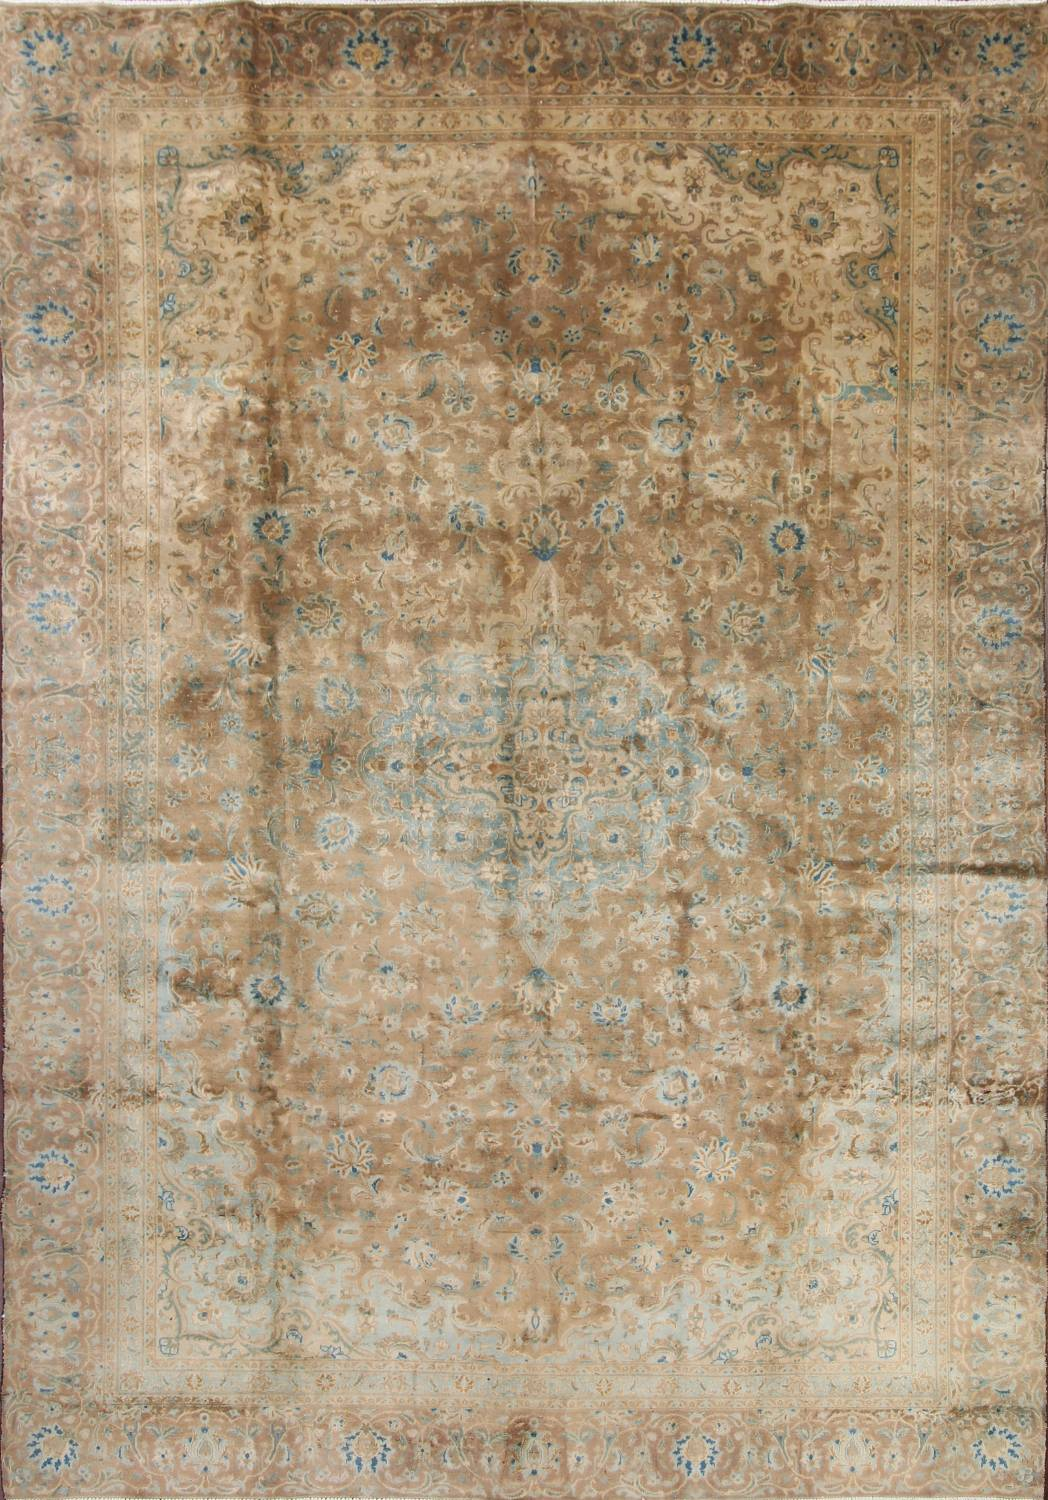 Antique Muted Distressed Kashan Persian Area Rug 9x13 image 1